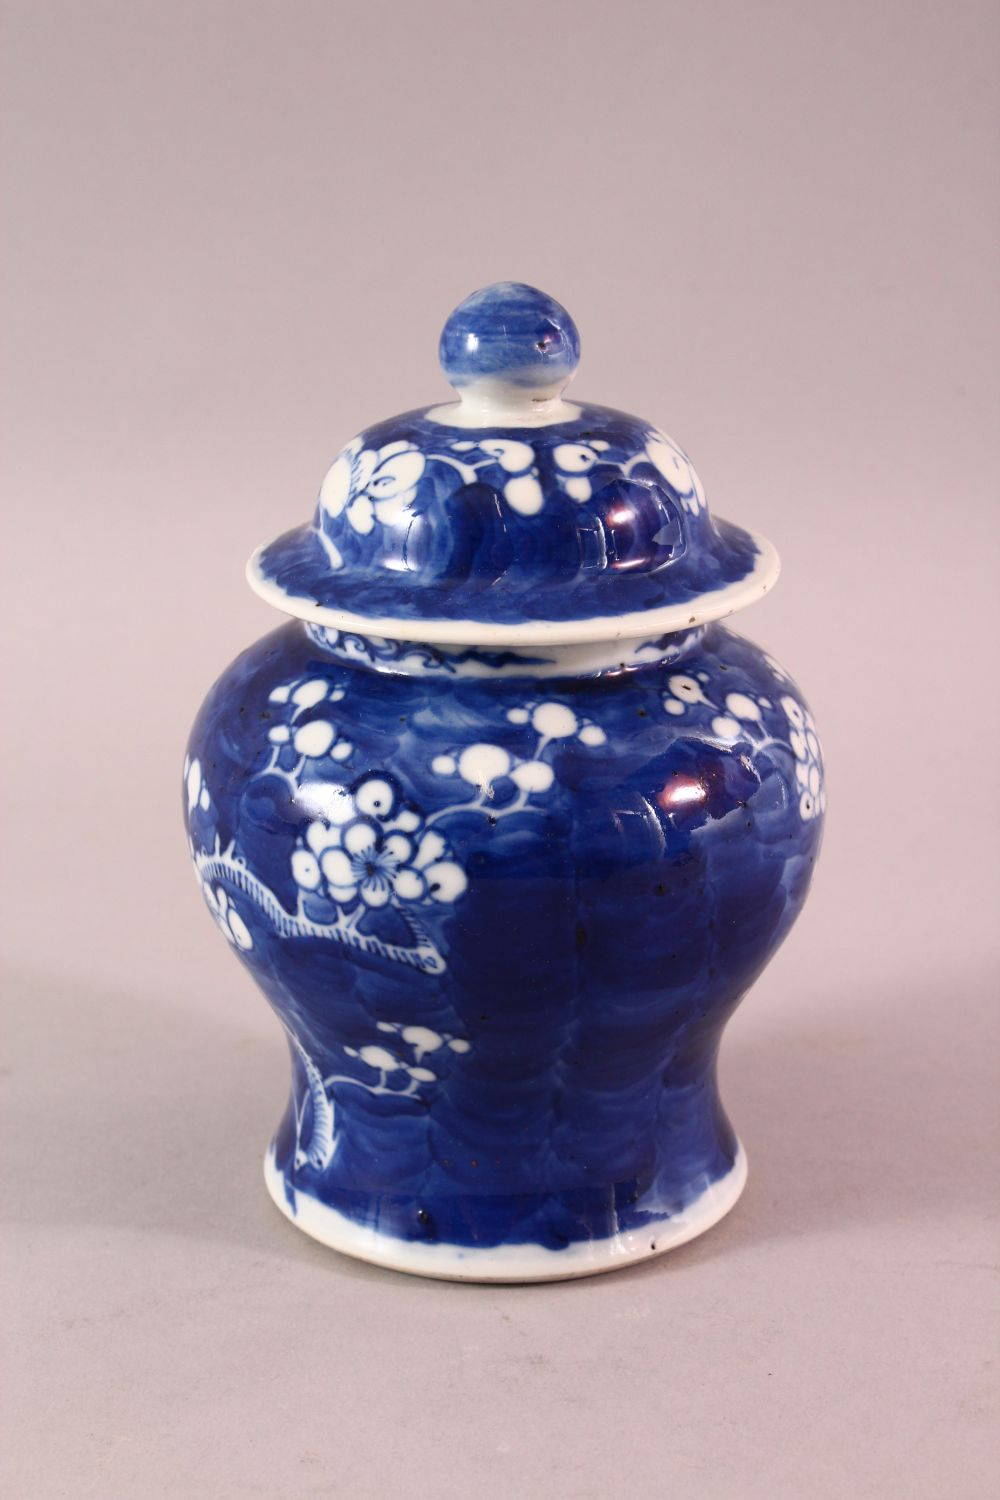 A 19TH / 20TH CENTURY CHINESE BLUE & WHITE PORCELAIN PRUNUS JAR & COVER, with prunus decoration, - Image 2 of 6